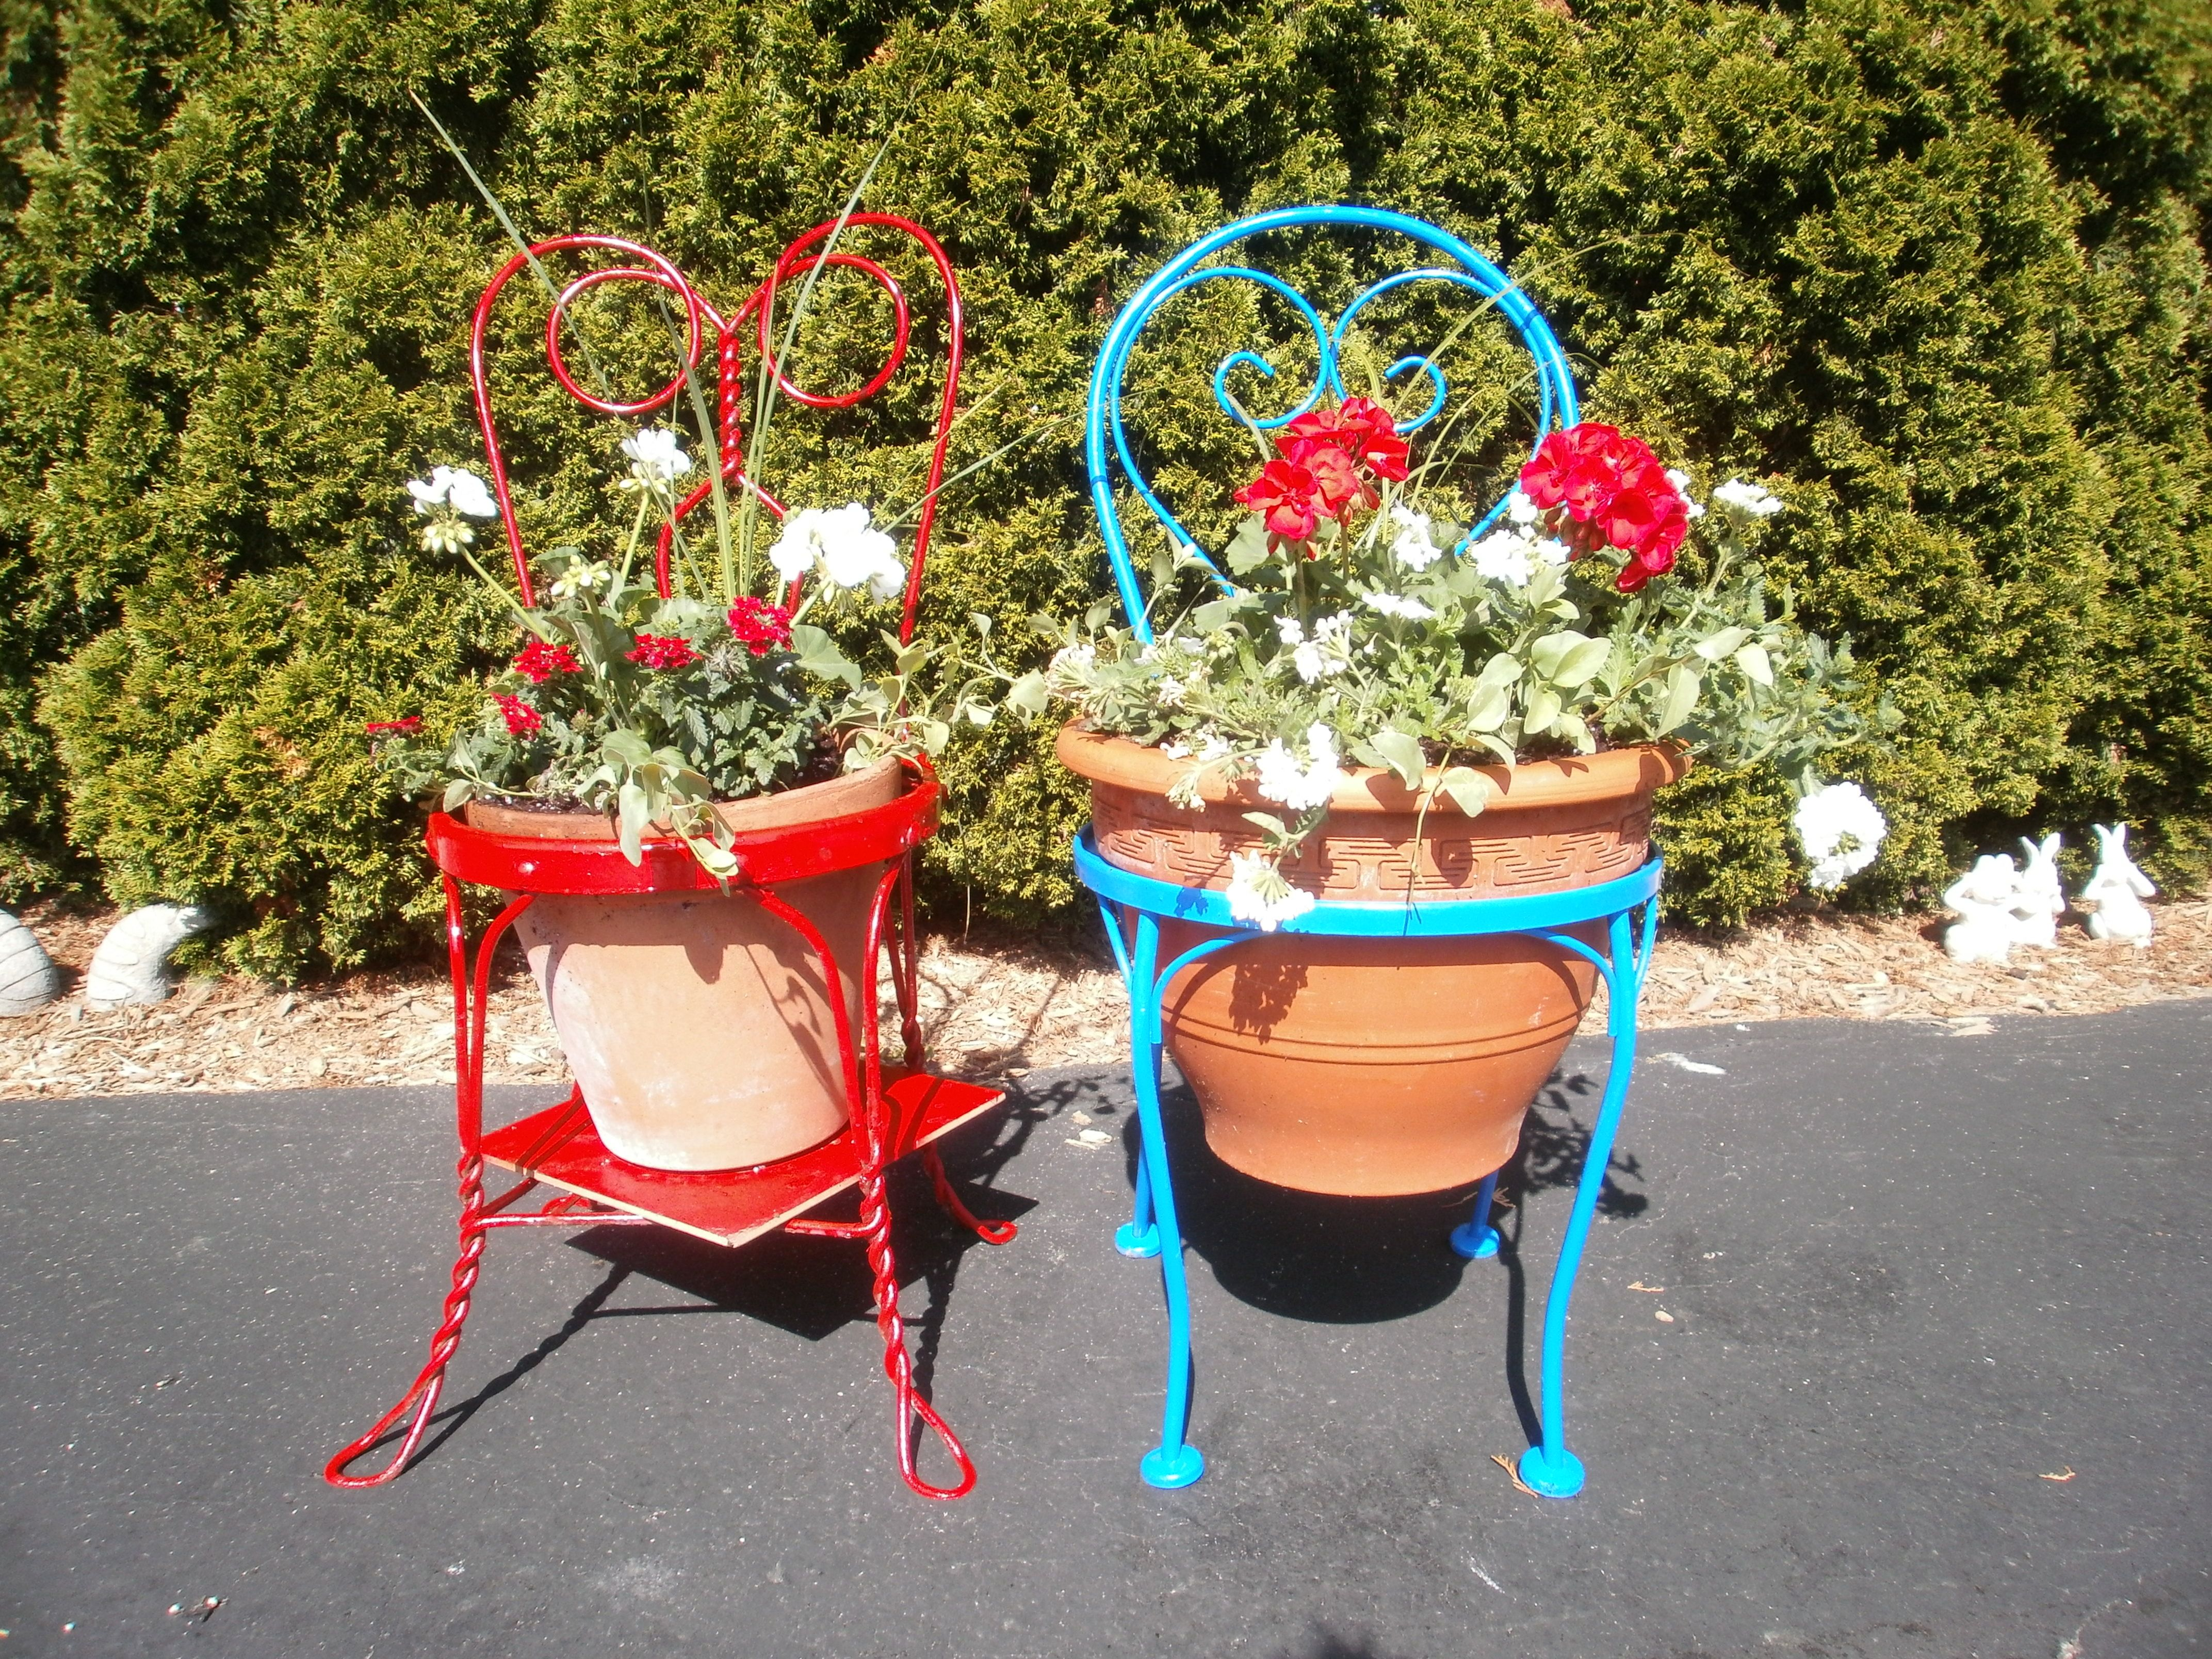 Painted old metal chairs and inserted planted flower pots.